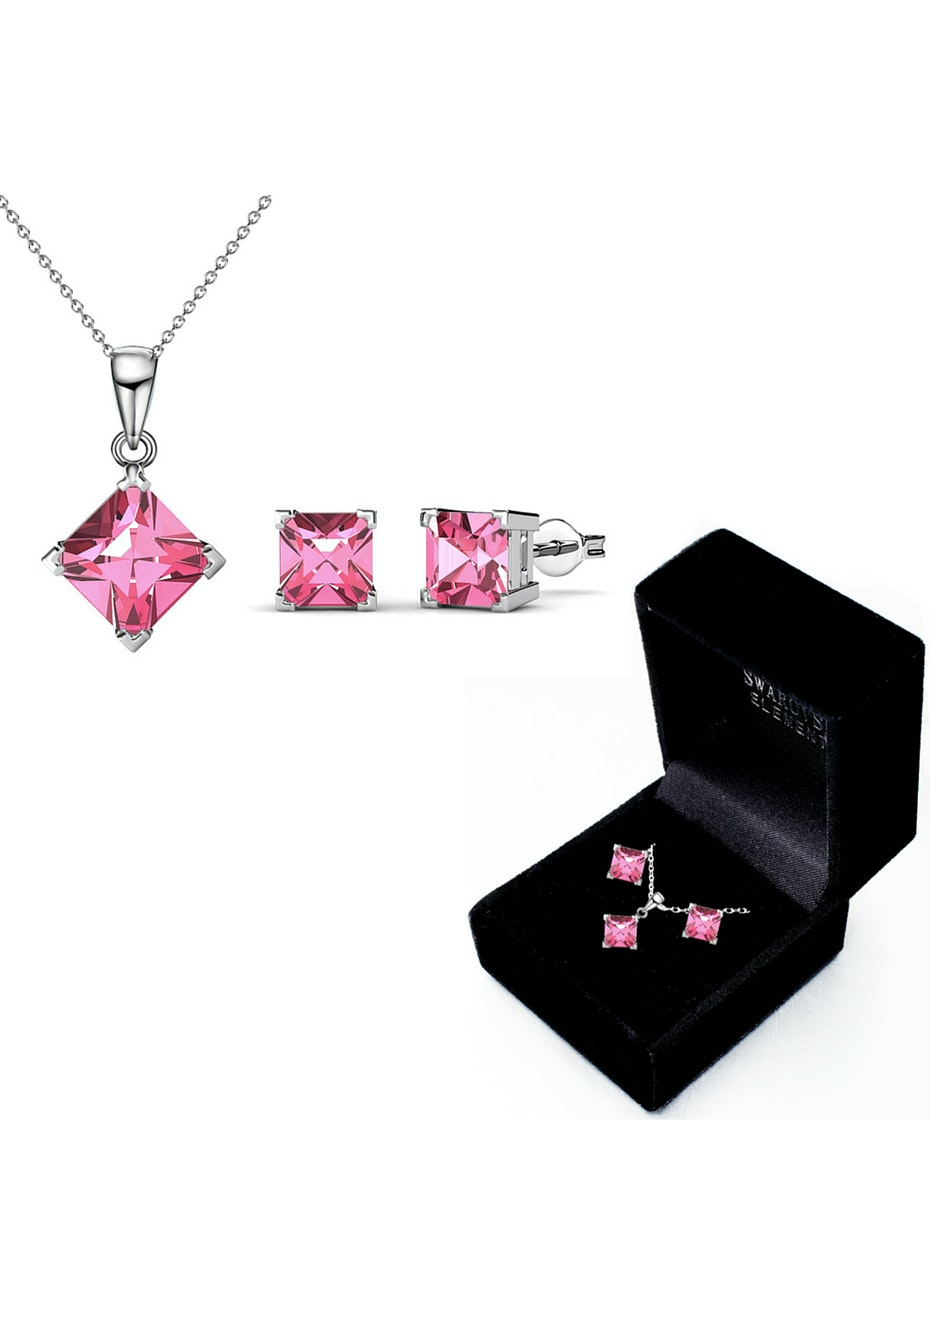 Boxed Matching Set Embellished with Crystals from Swarovski - Pink